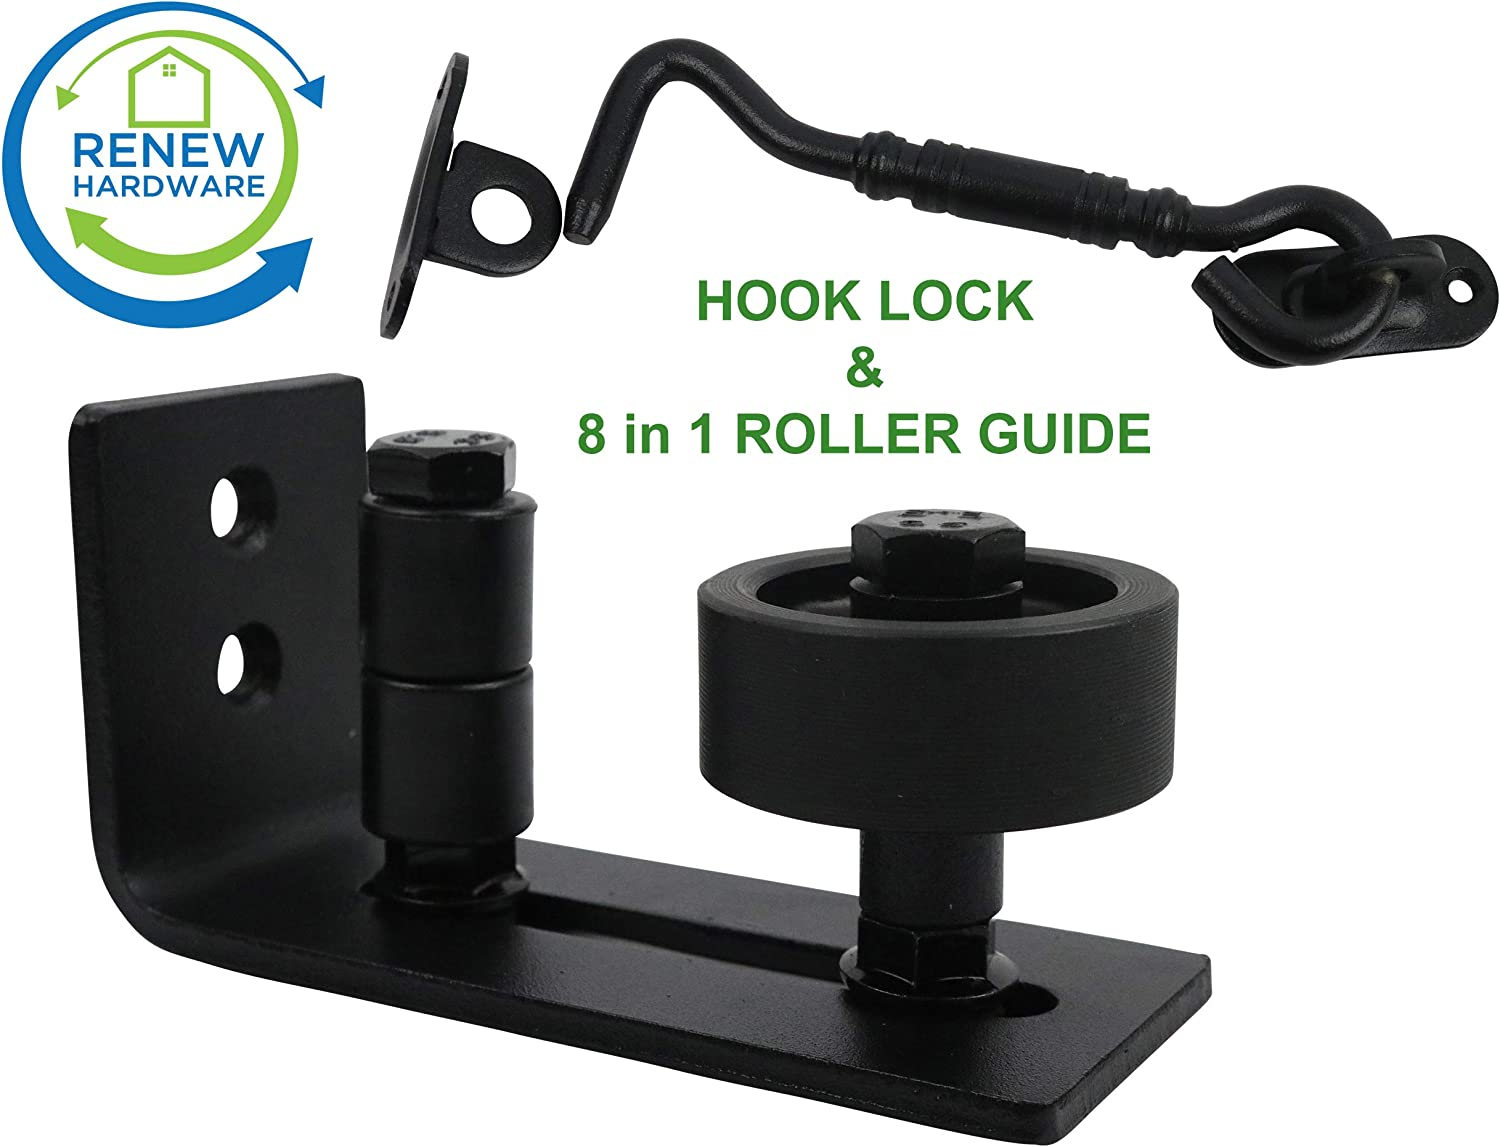 8 Setup Options Flush Design | for All Barn Doors Barn Door Floor Guide Stay Roller with Iron Hook Door Lock One Adjustable Wall Guide per Unit Ordered Bottom Bracket Sits Flat On Ground